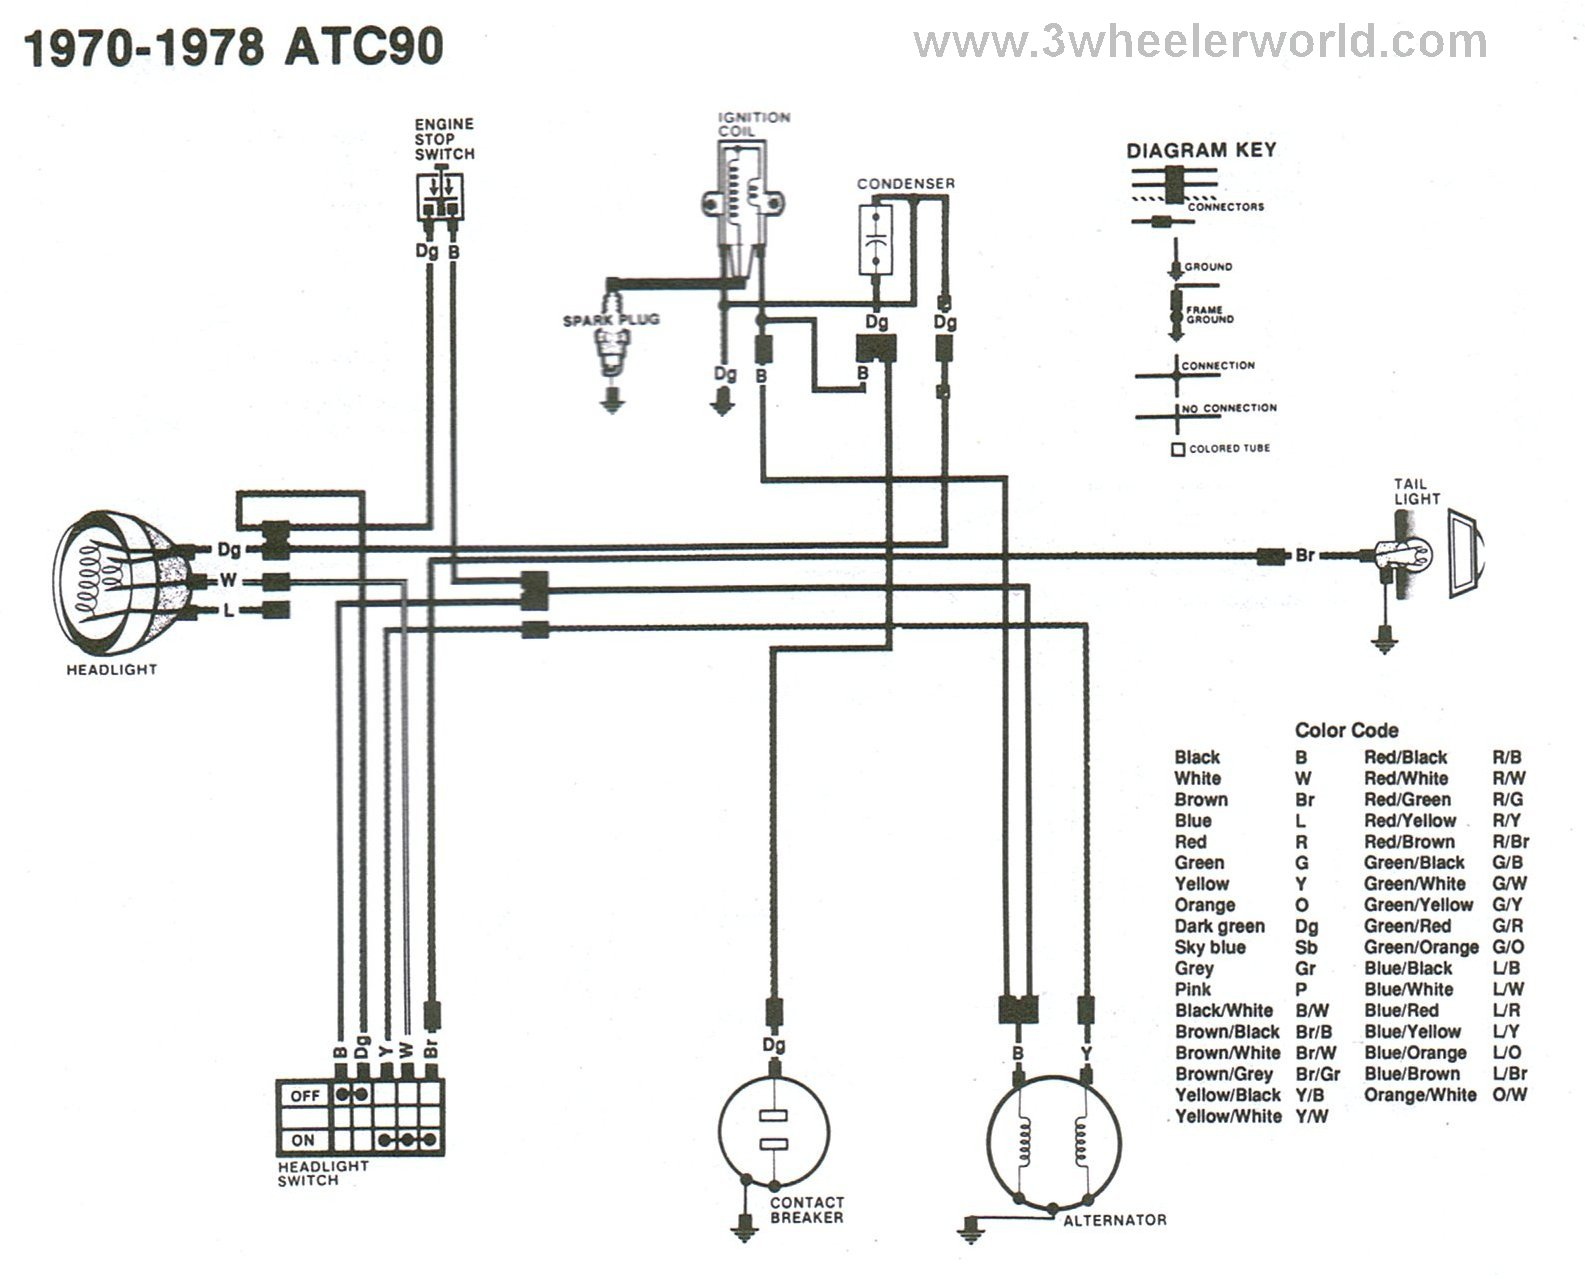 ATC90x70Thru78 3 wheeler world tech help honda wiring diagrams bajaj 4 stroke three wheeler wiring diagram at arjmand.co